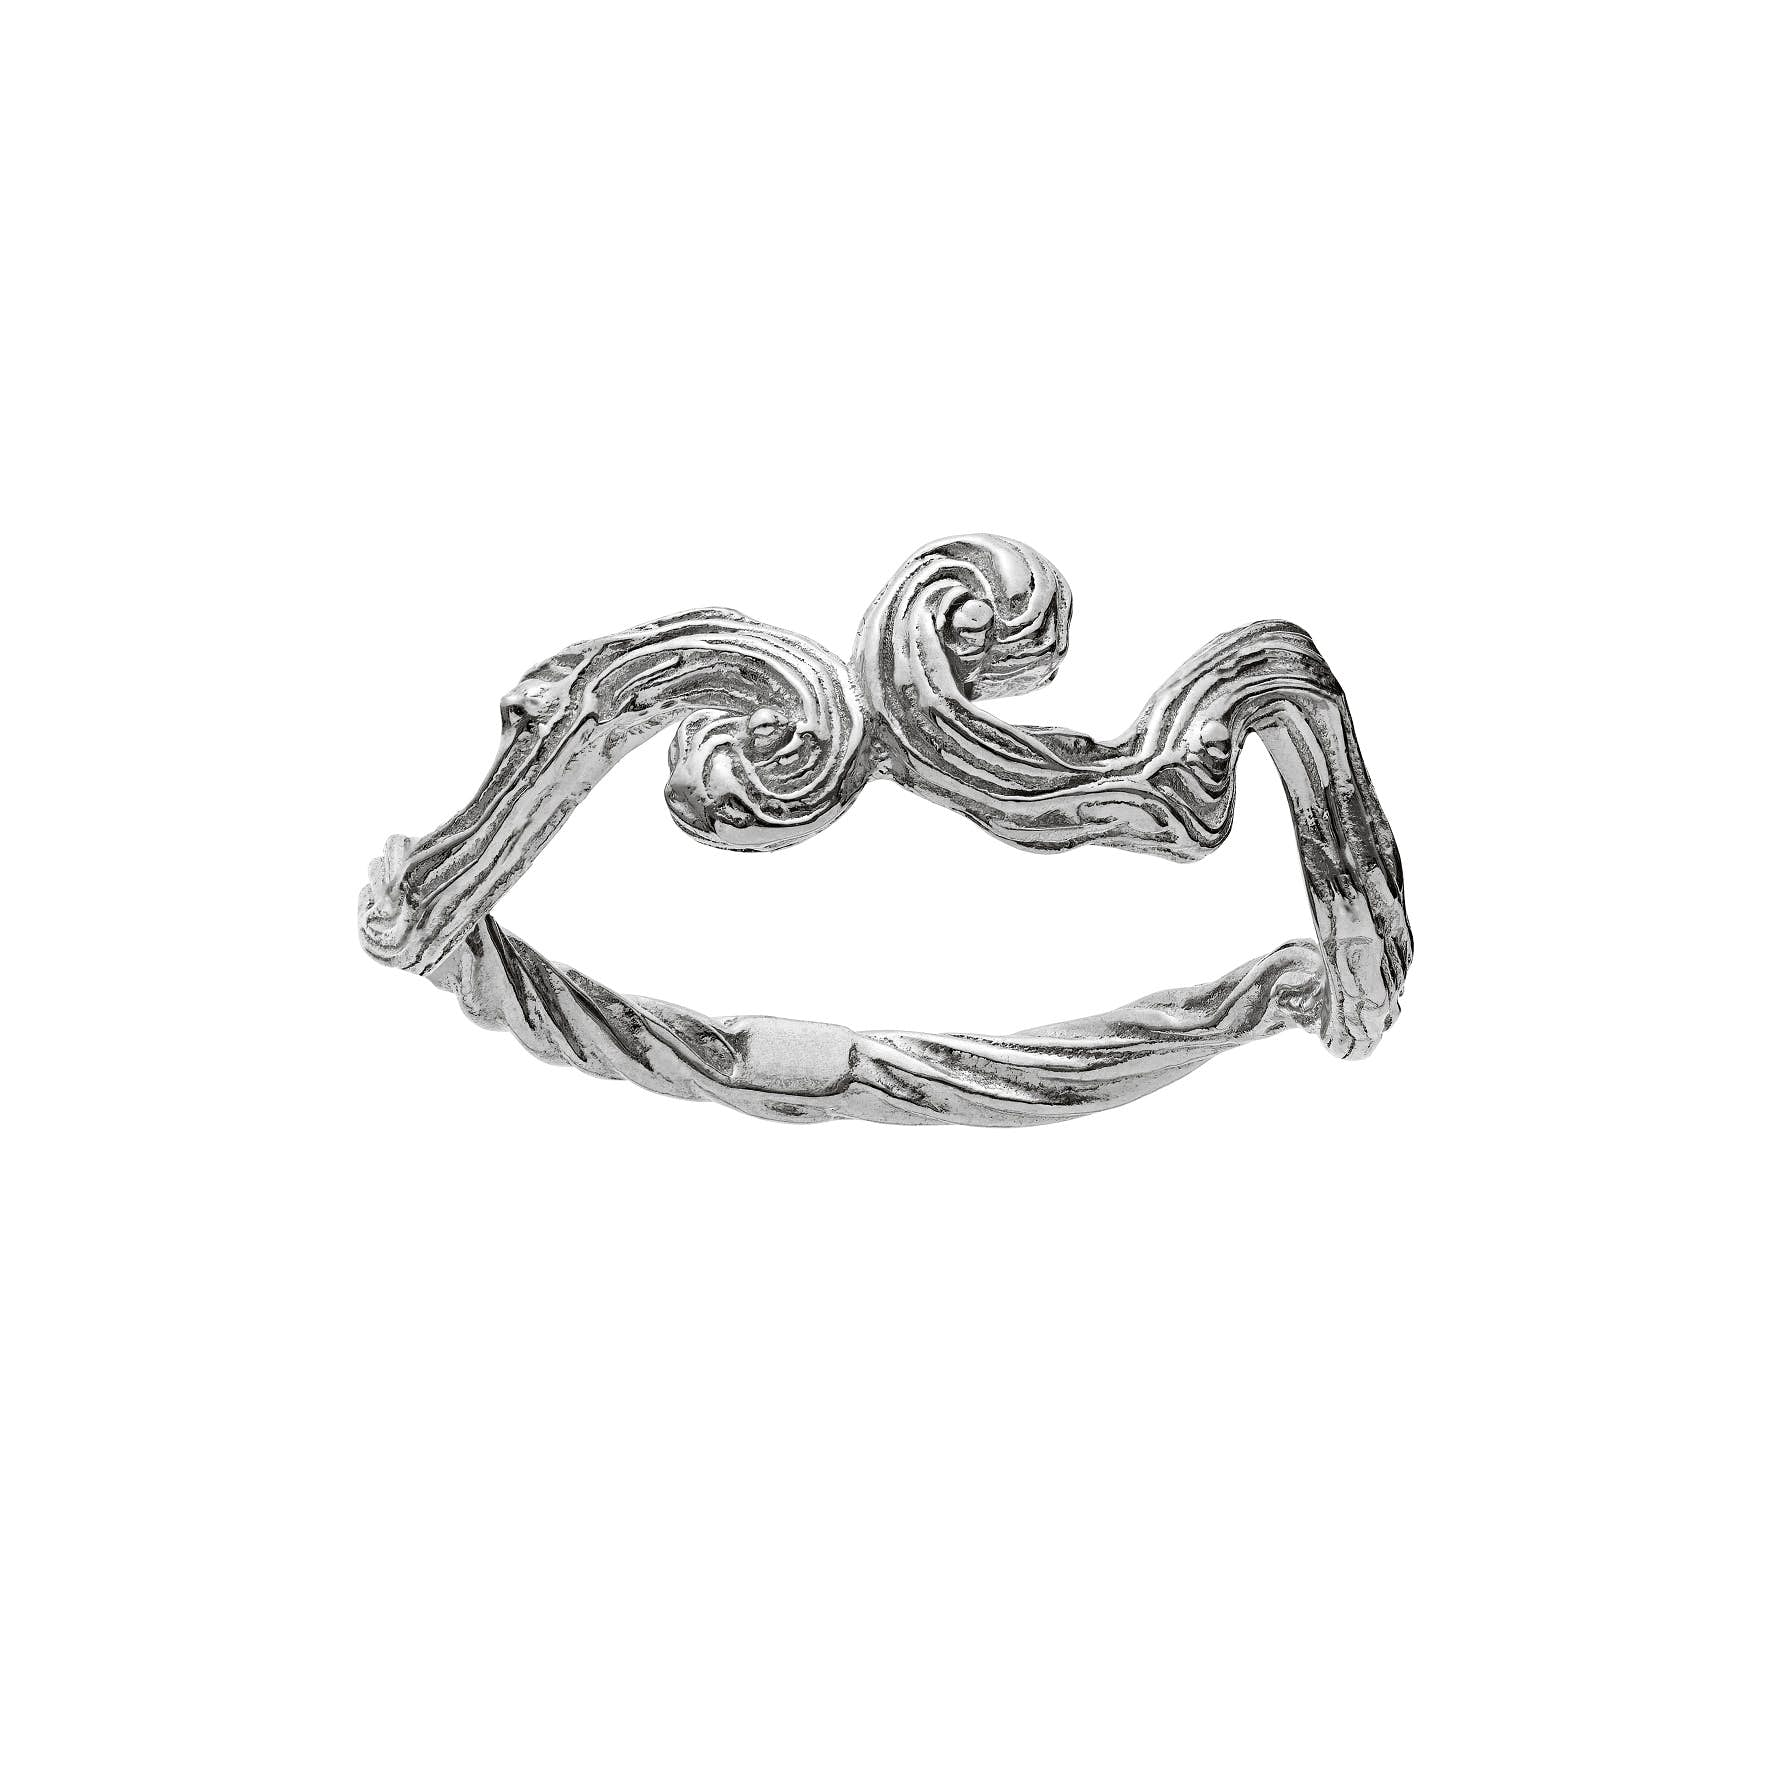 Cora Ring from Maanesten in Silver Sterling 925